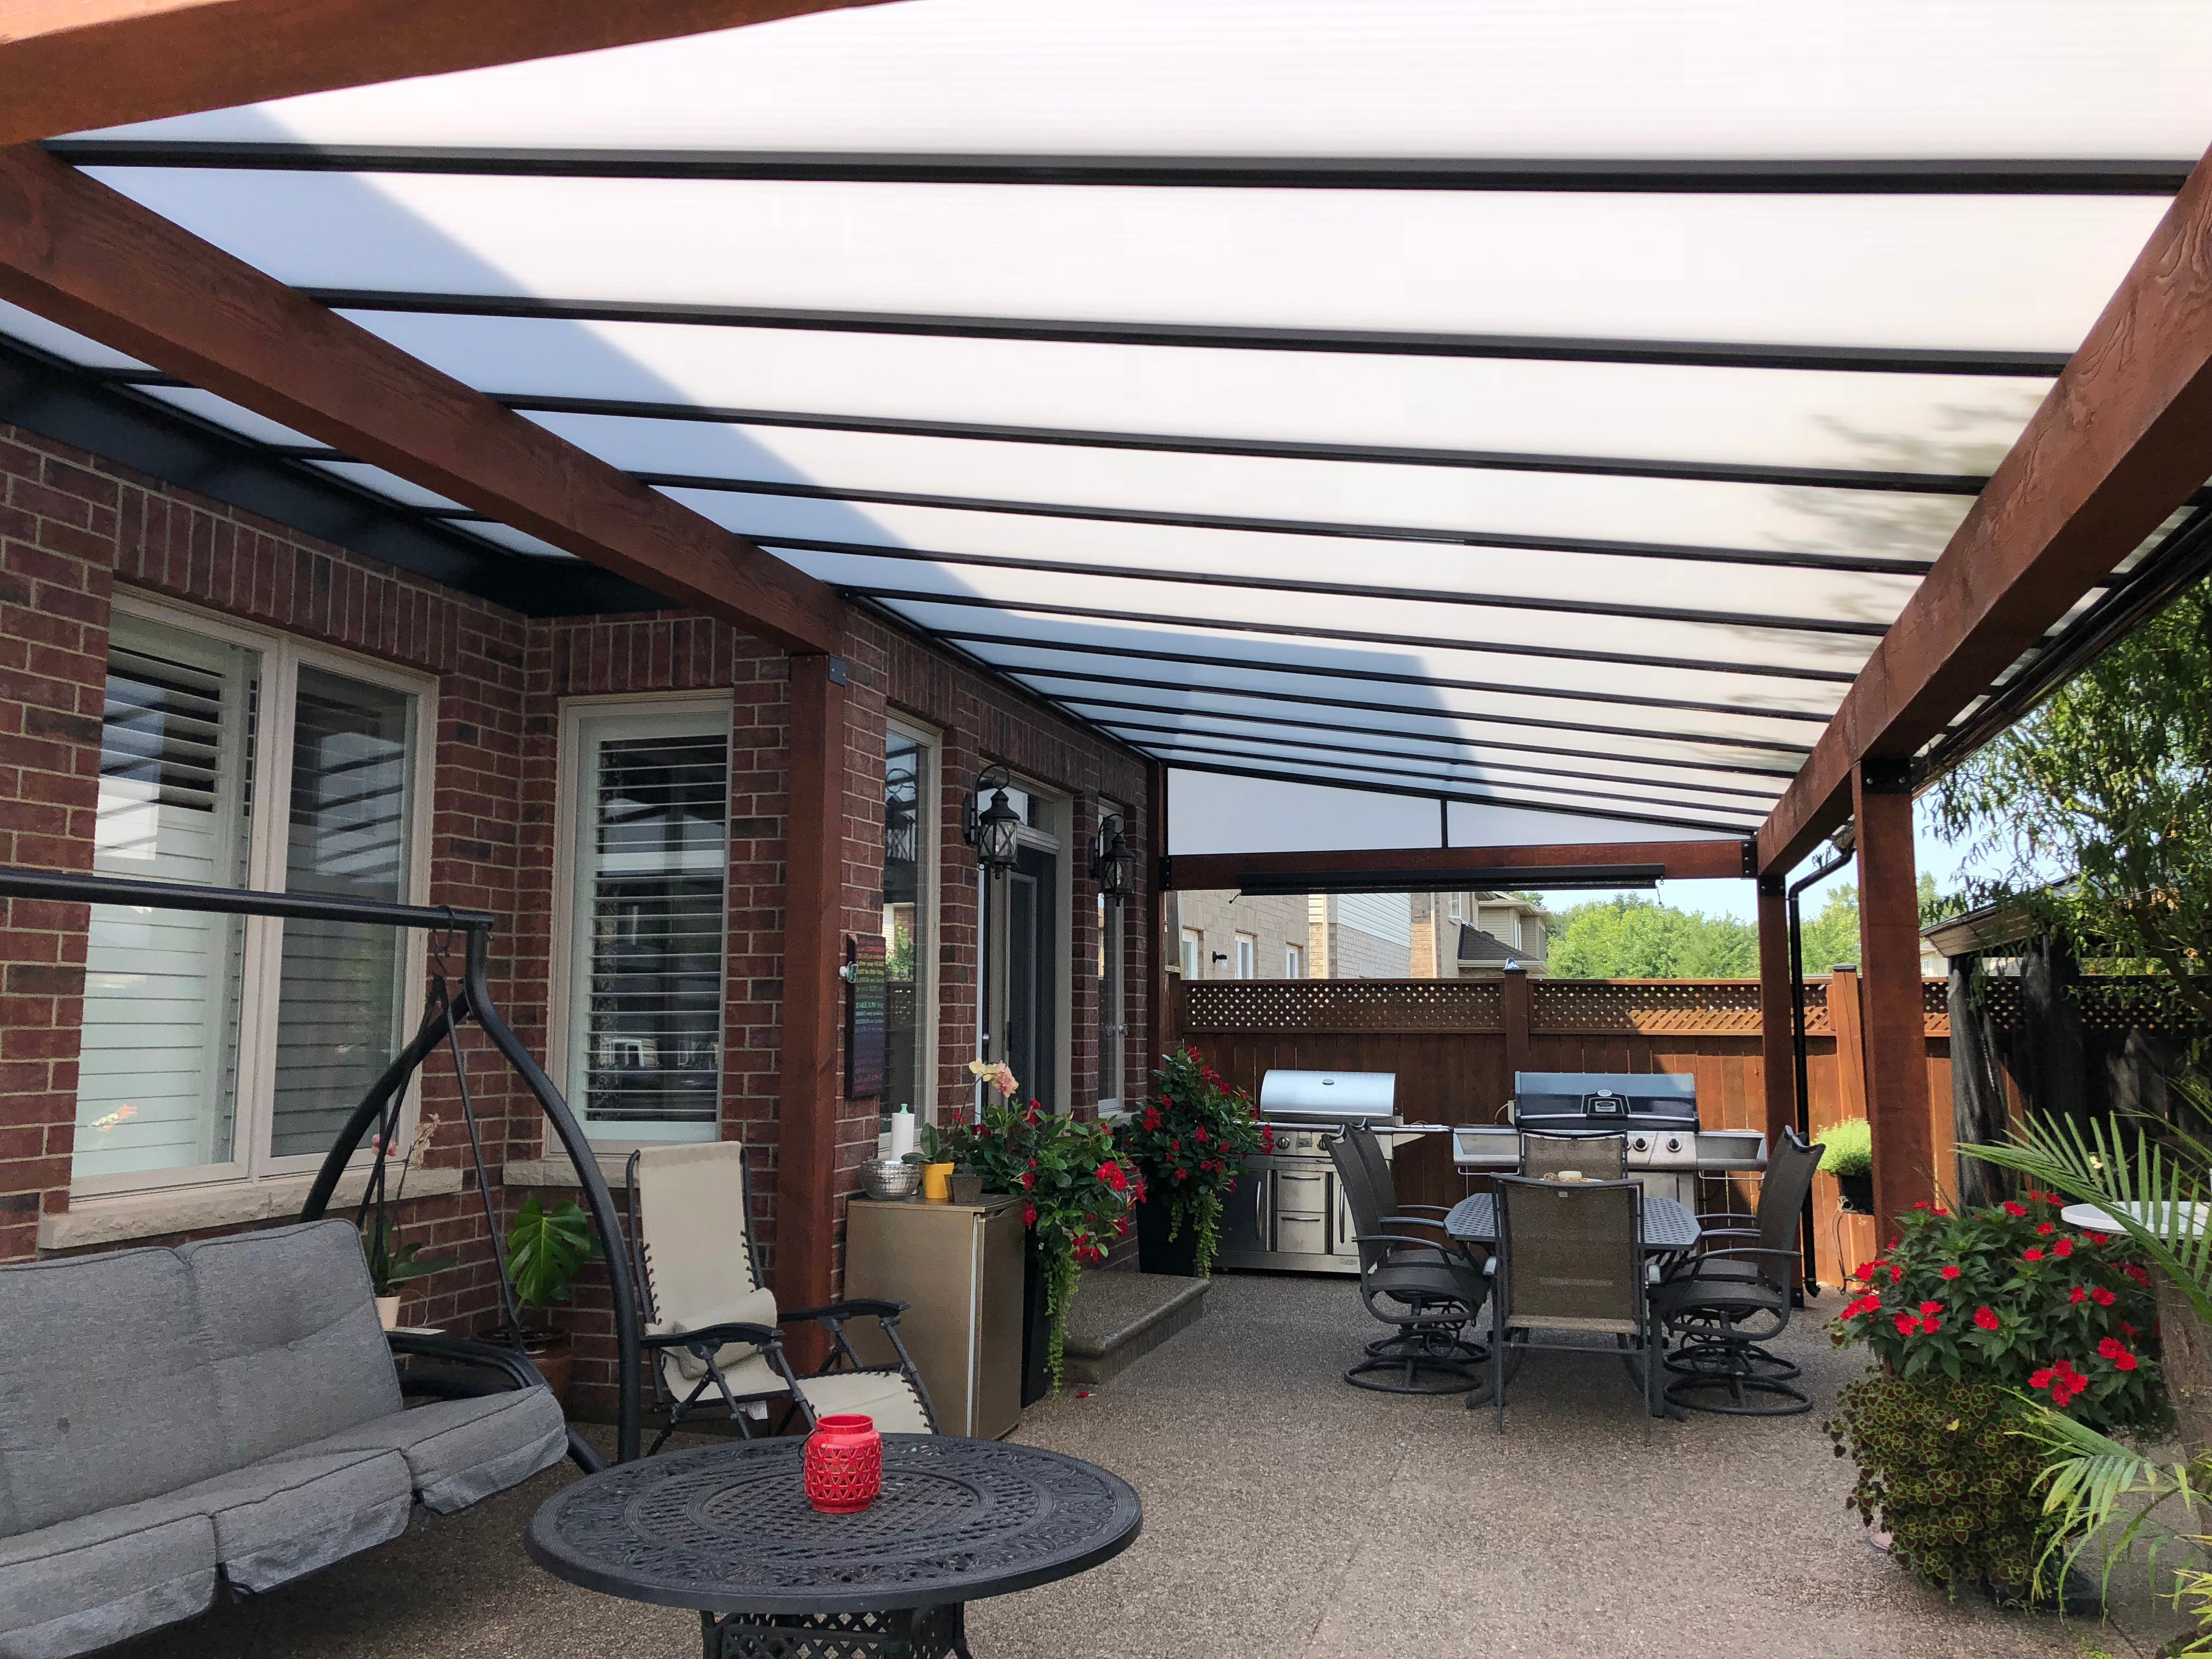 Lumon Canada, Patio Cover Toronto, Patio Cover GTA, Patio Cover